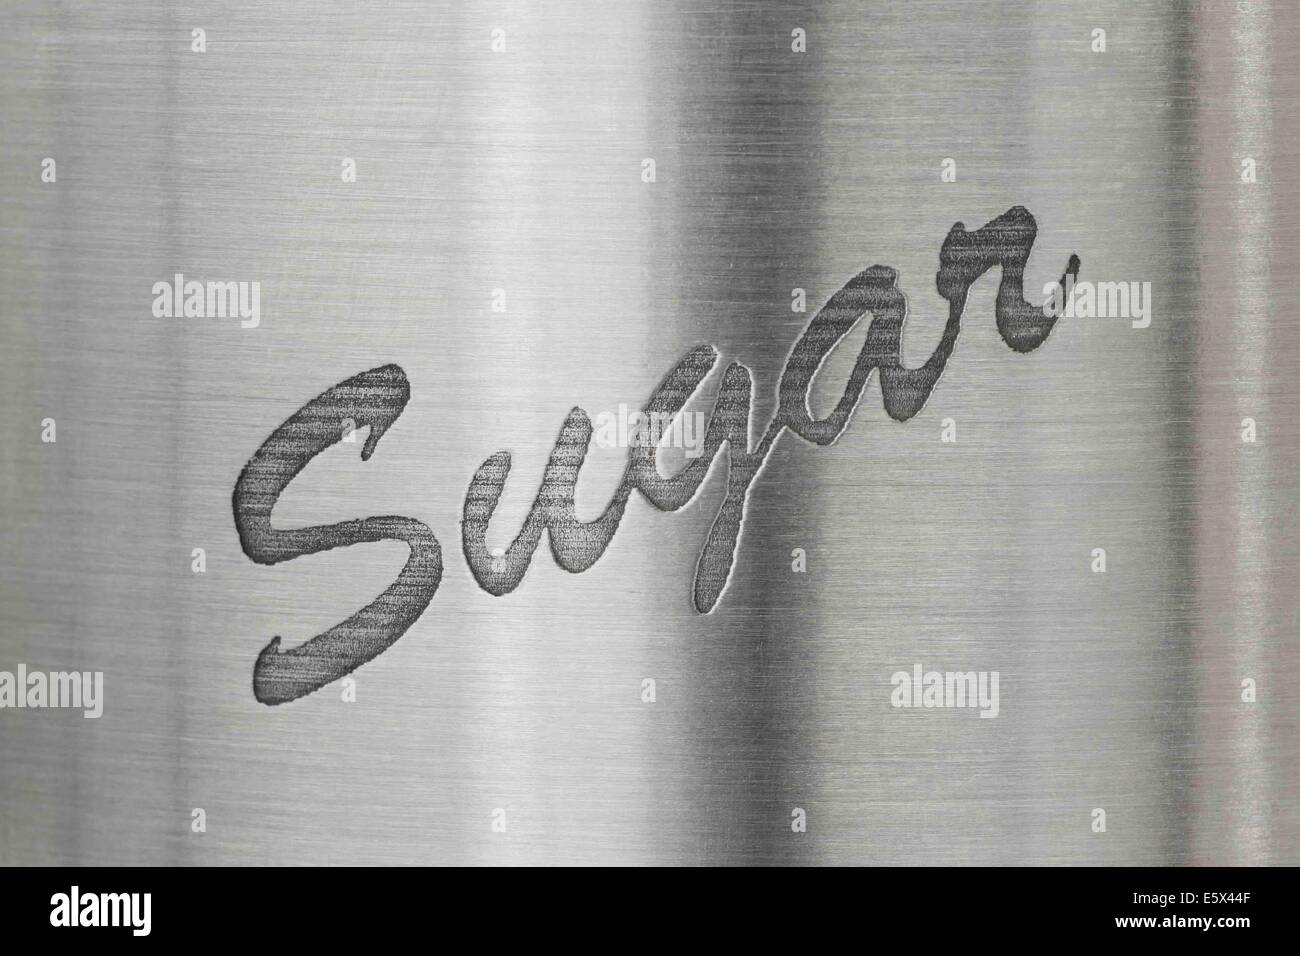 The word sugar on a stainless steel background - Stock Image